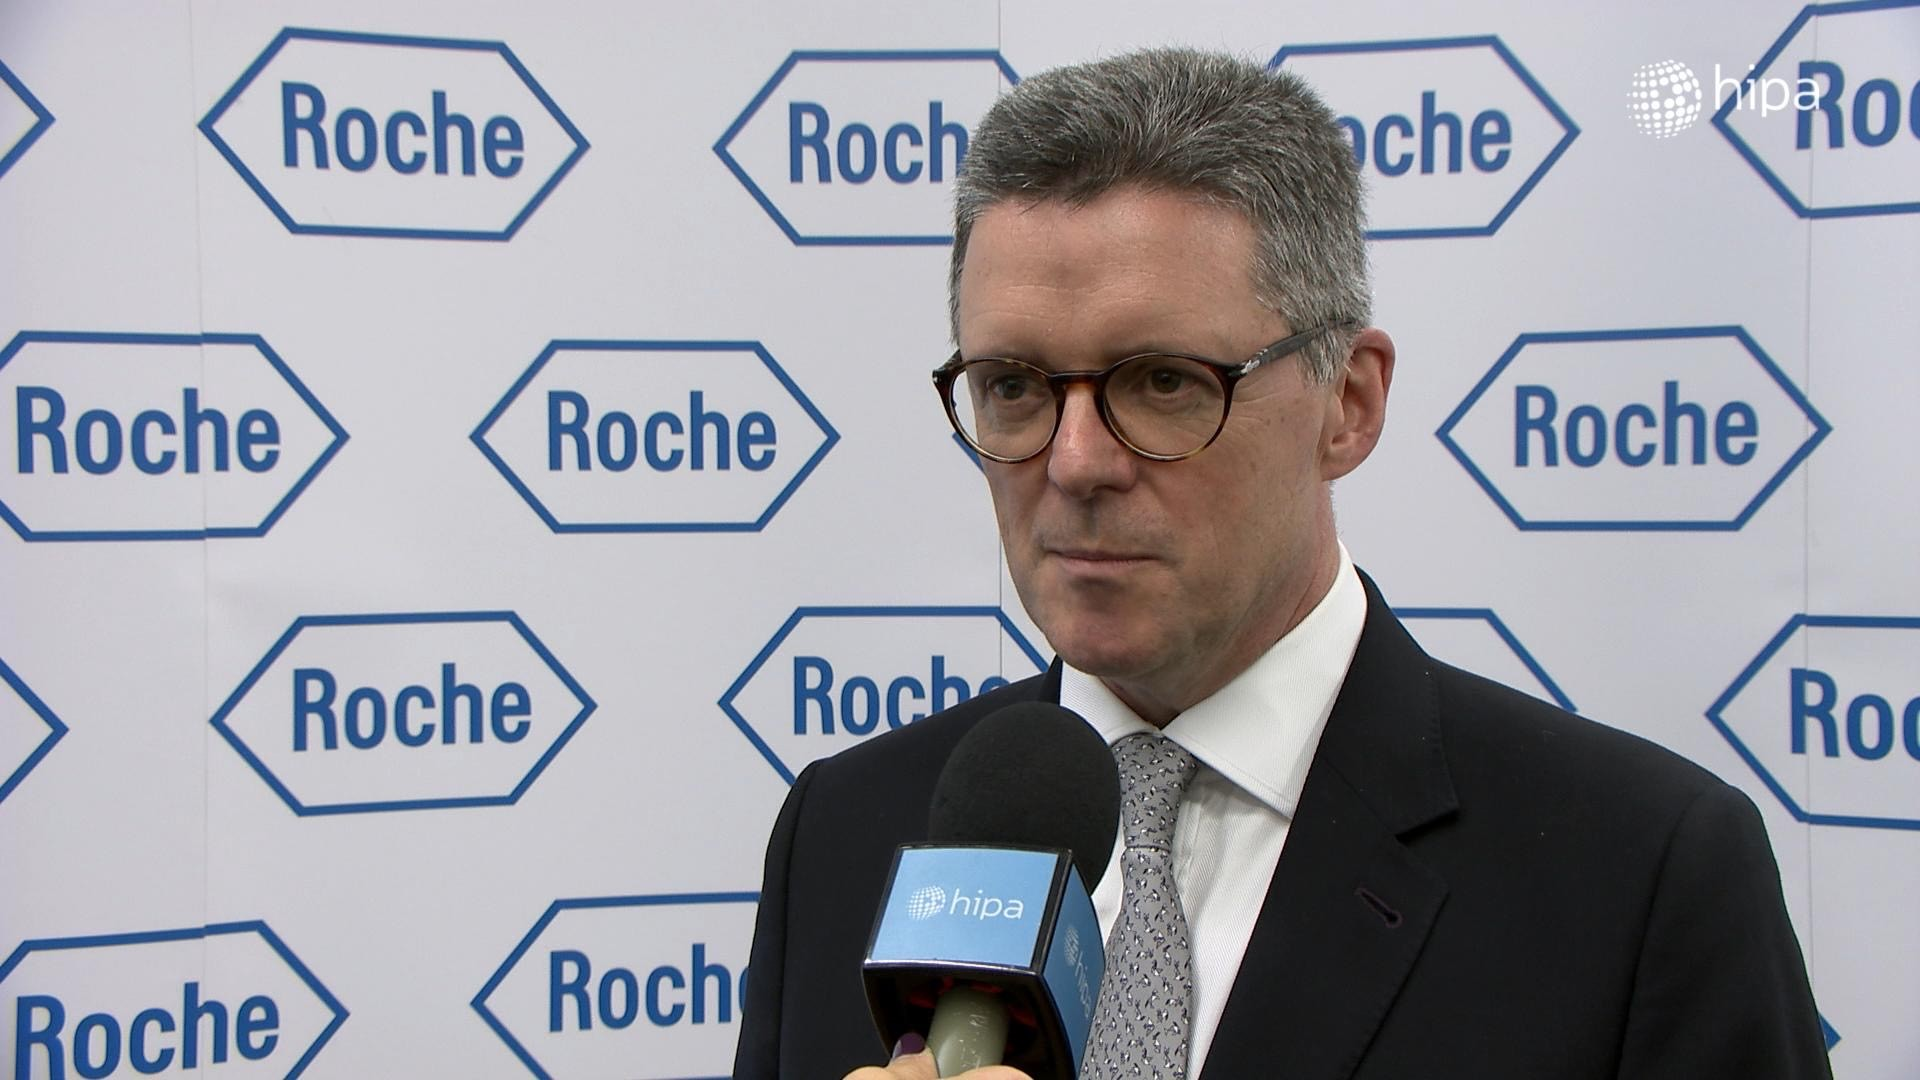 Roche establishes its European medicine safety-related centre in Budaörs - VIDEO REPORT